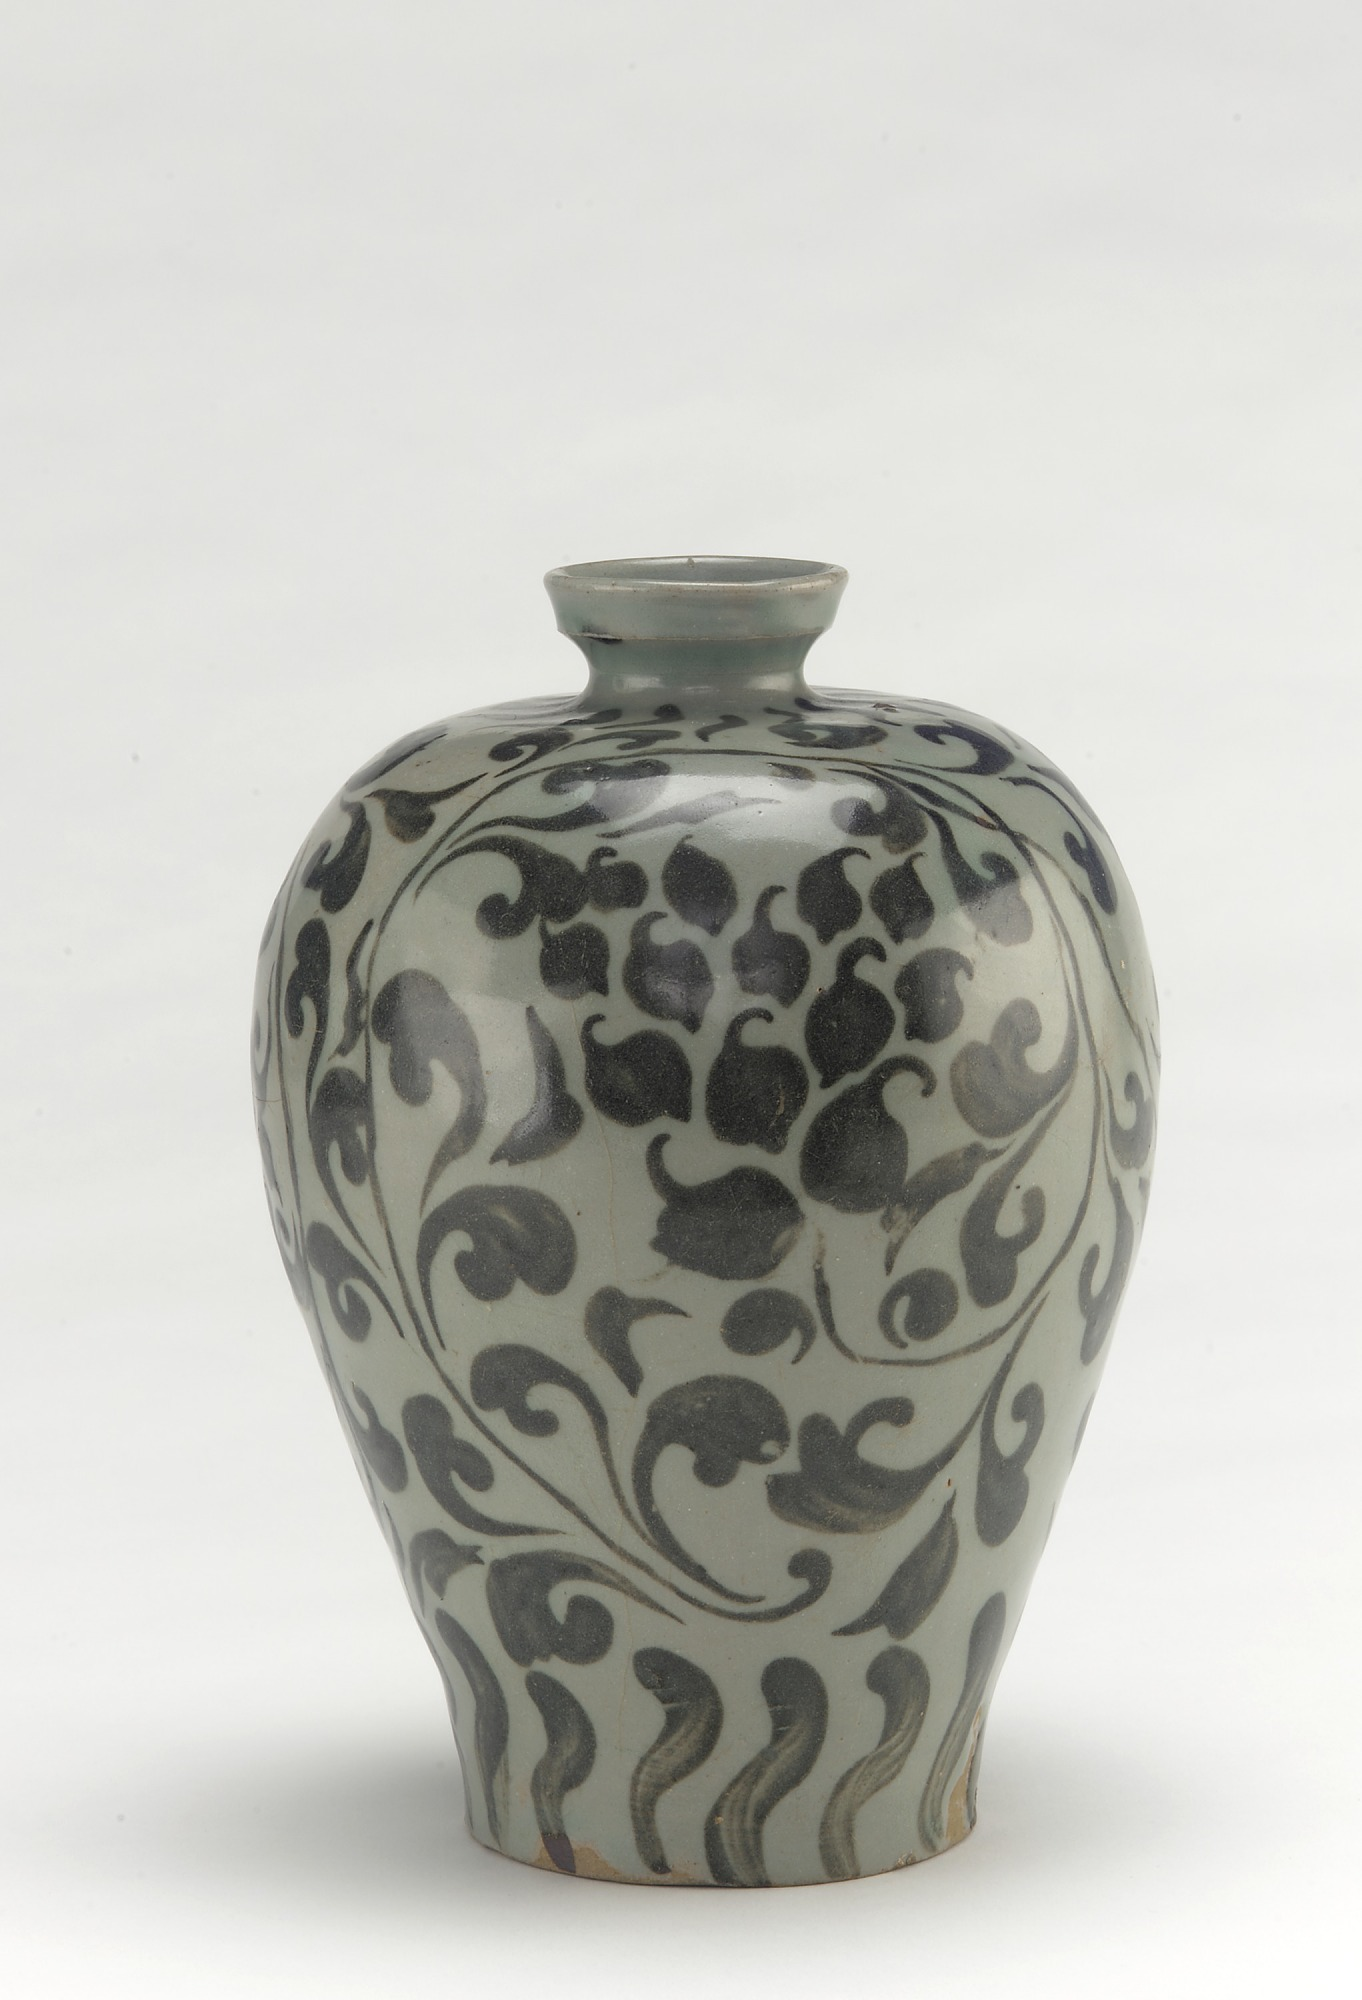 profile: Bottle with design of peony vinescrolls